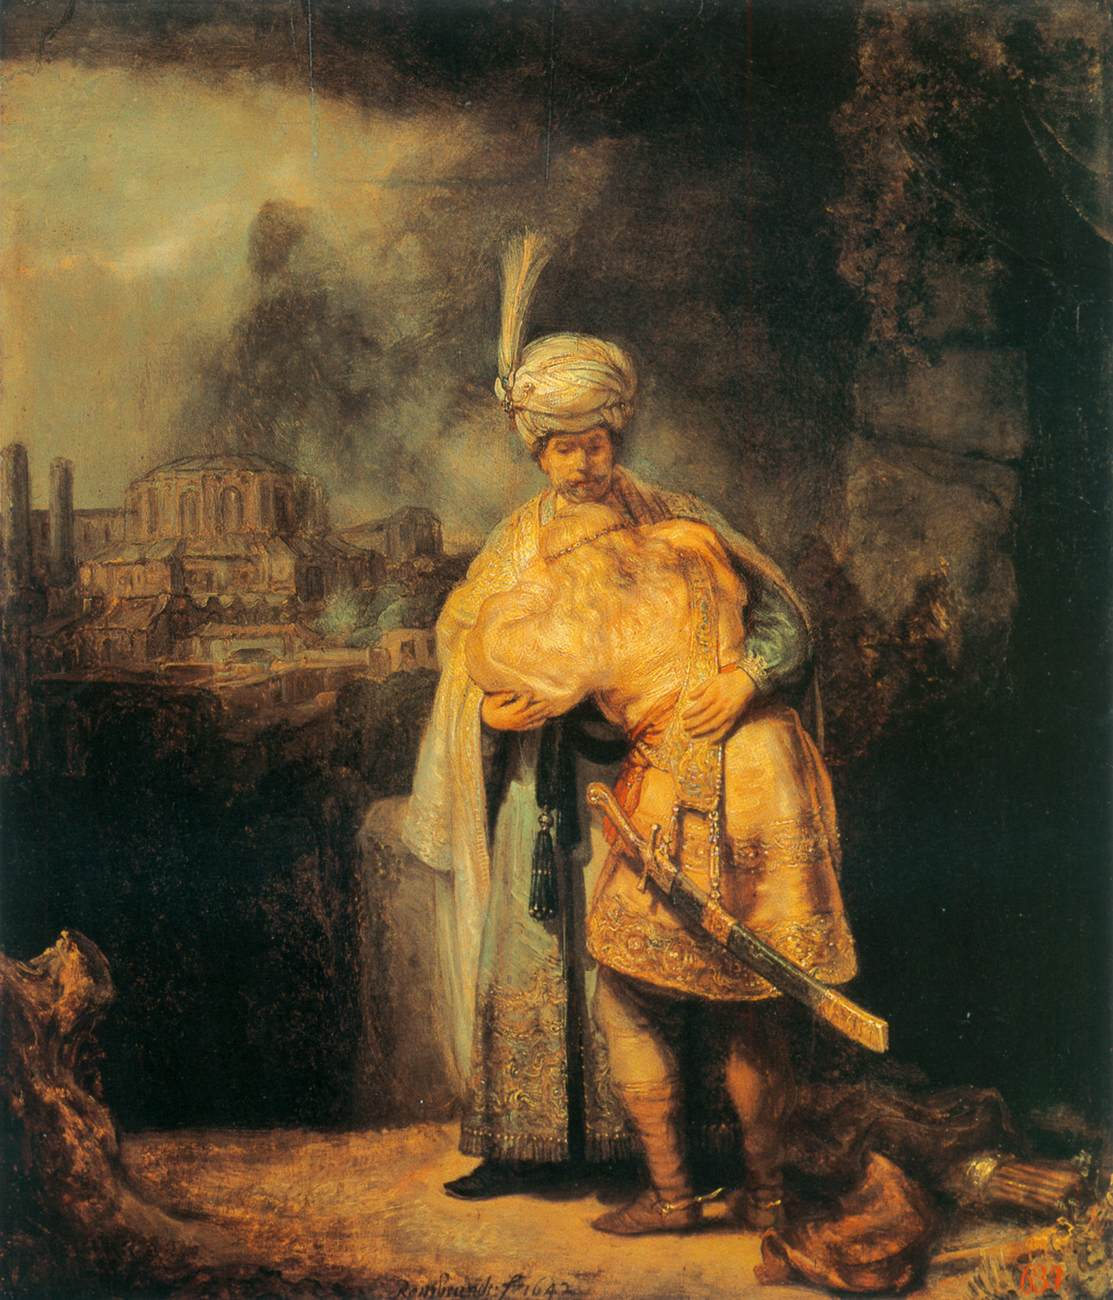 Biblical Scene by Rembrandt